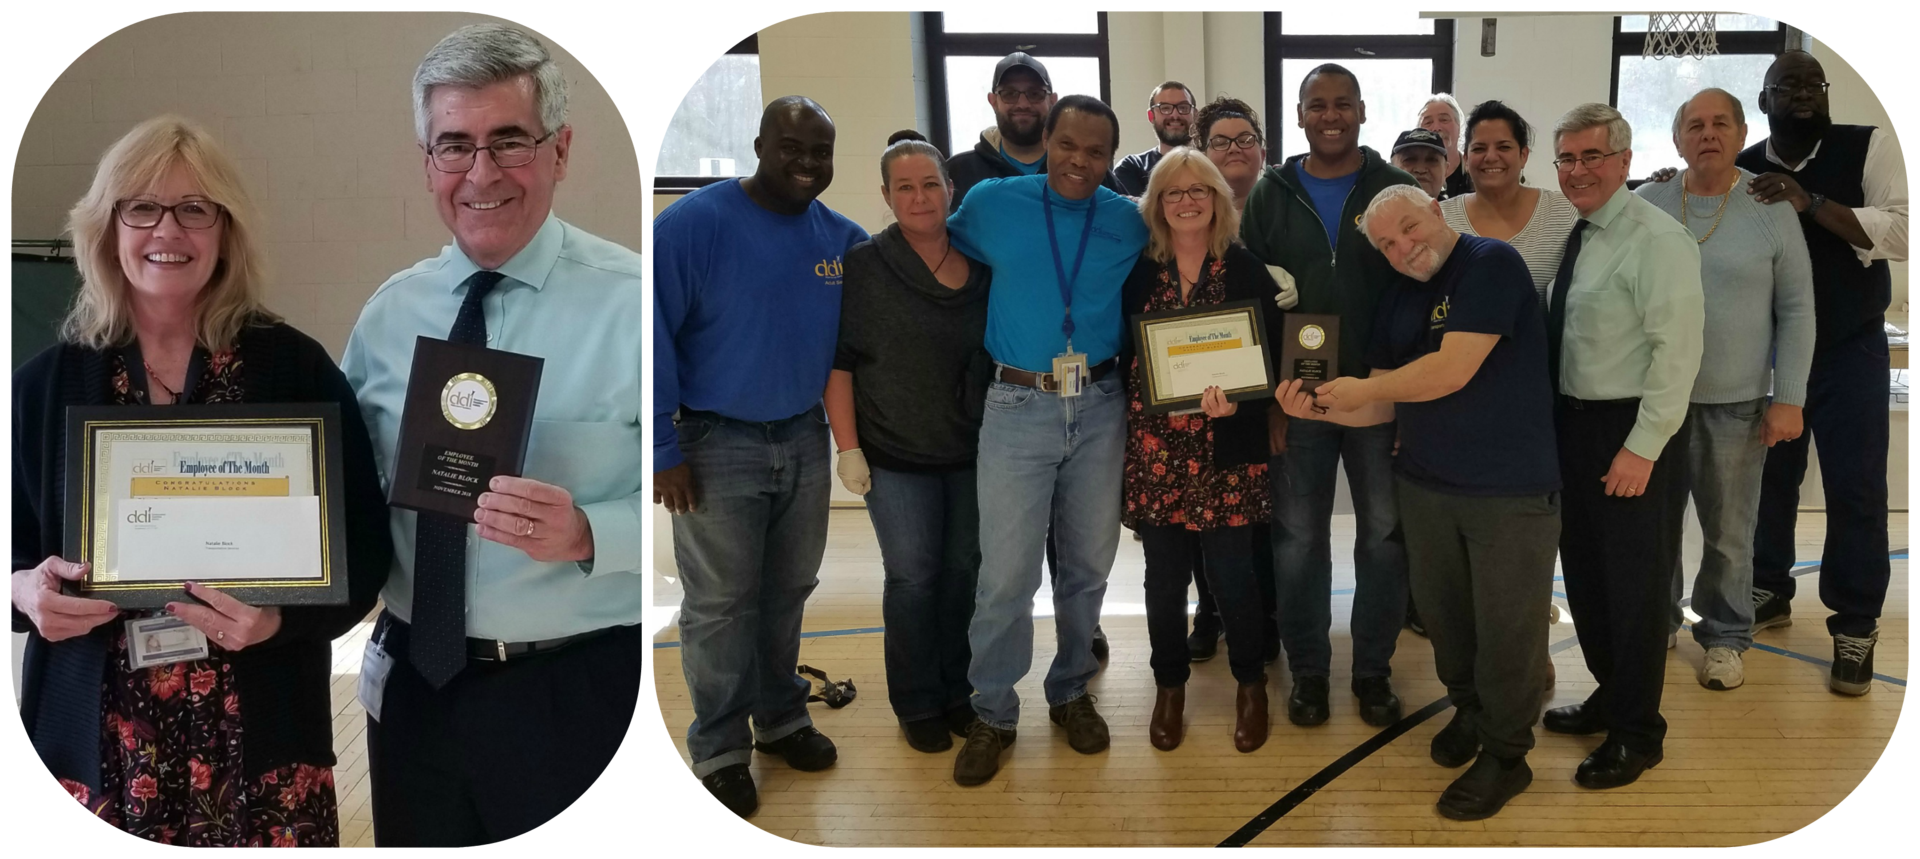 EOM winner with Executive Director and coworkers (collage)